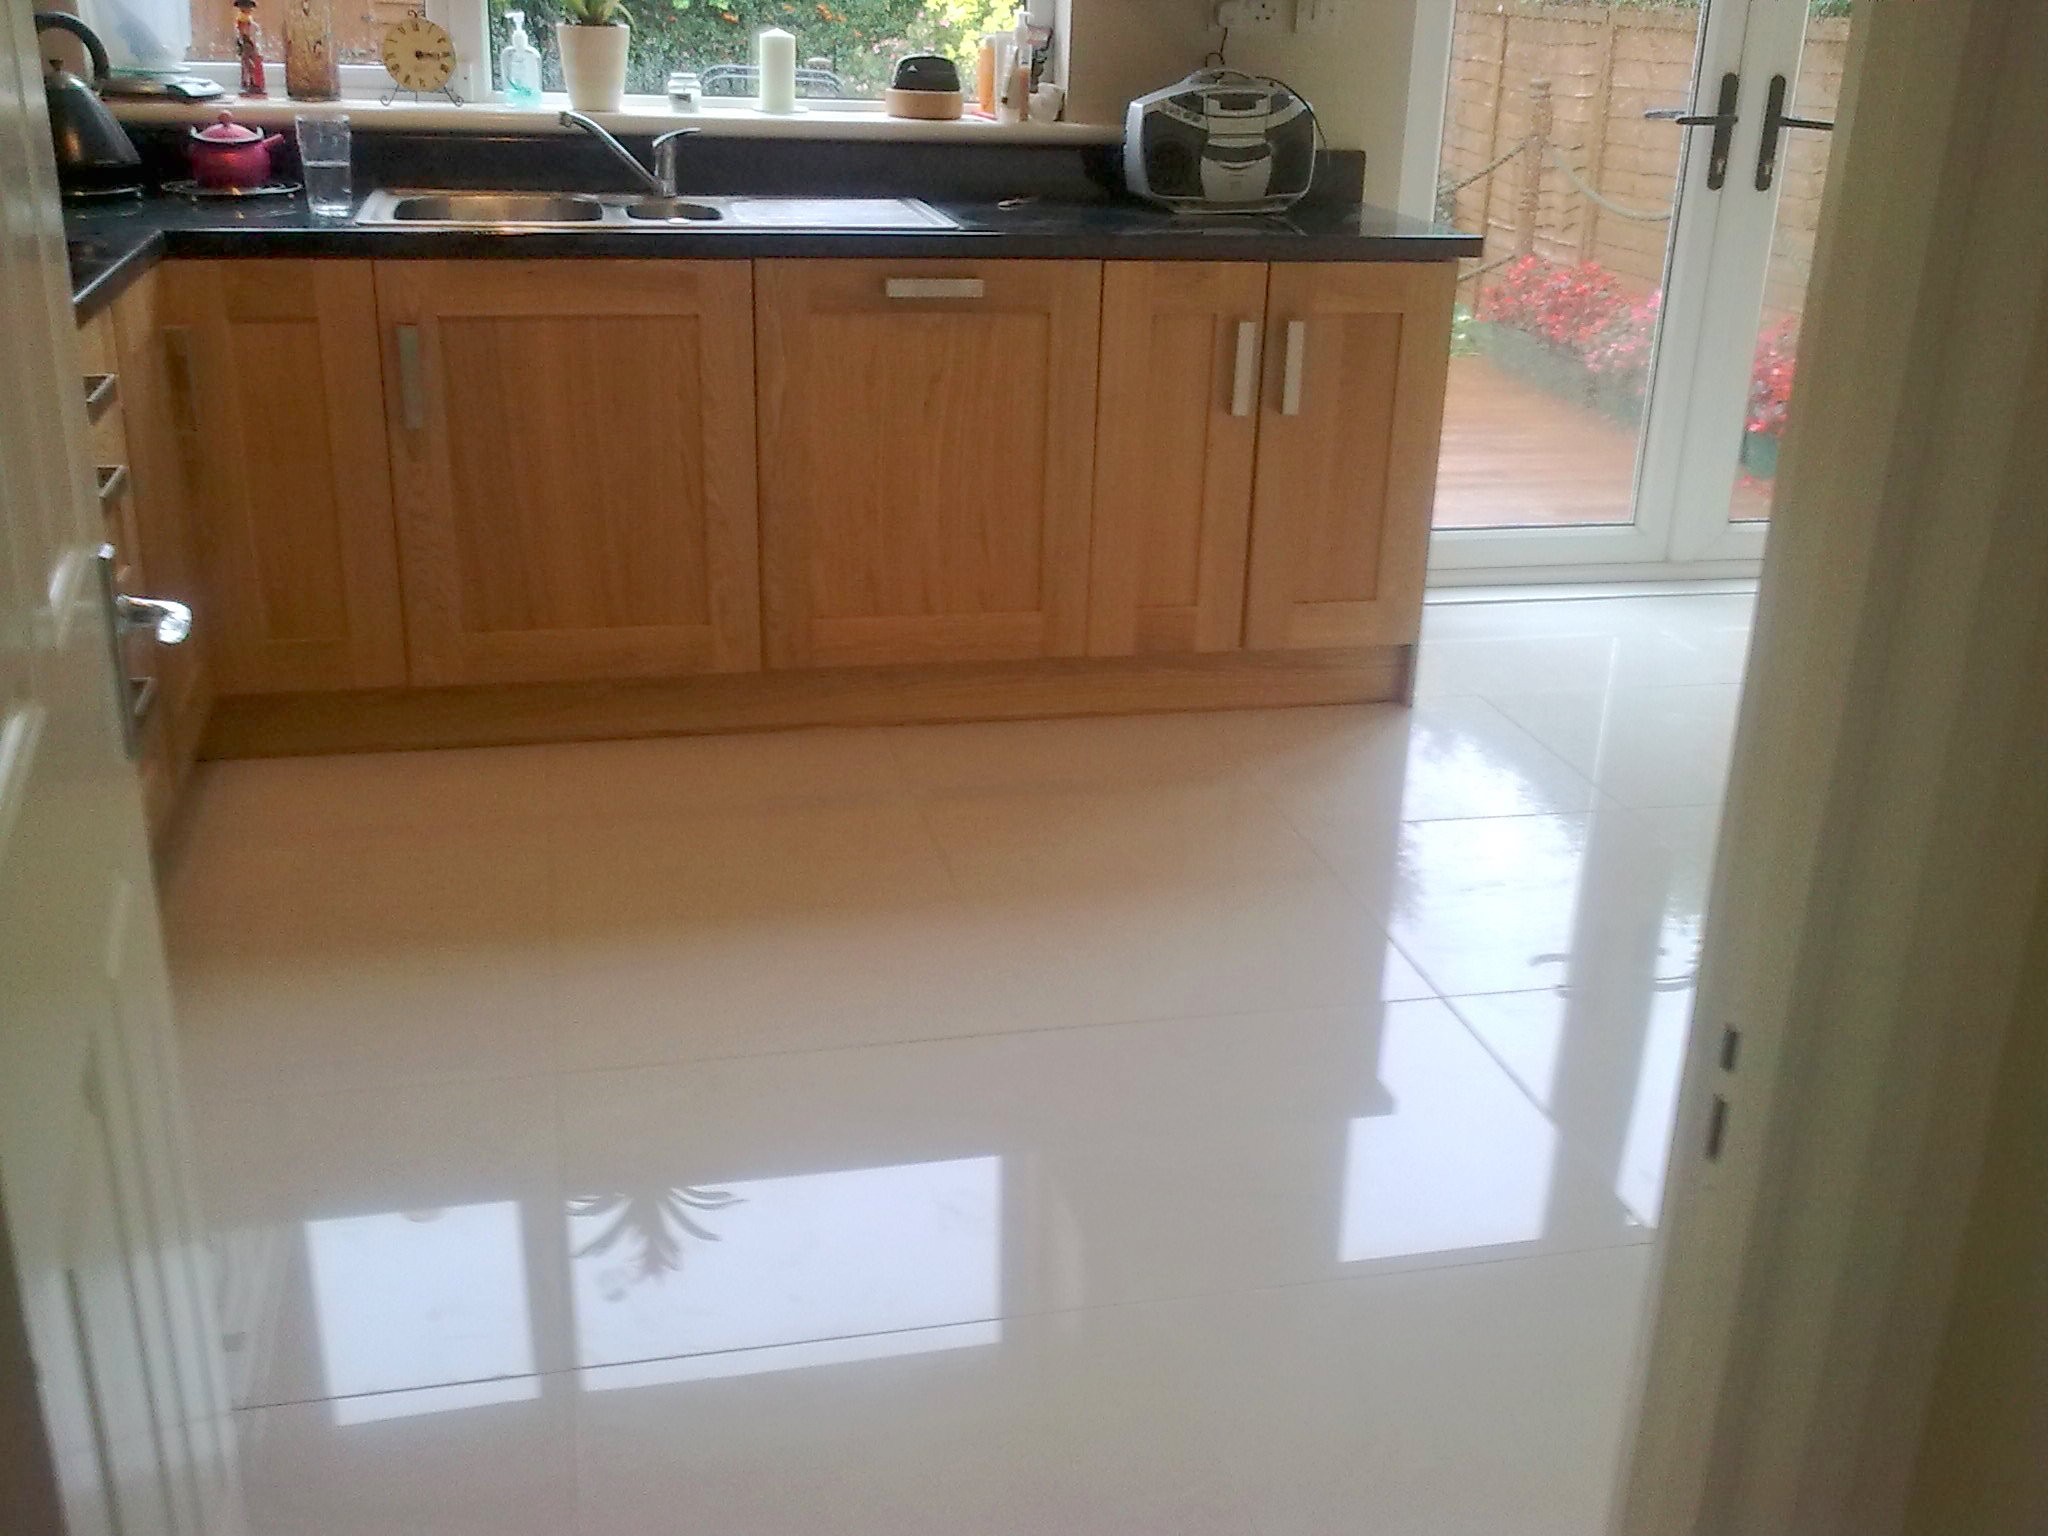 Shiny tile floor image collections tile flooring design ideas glossy floor tiles image collections tile flooring design ideas how to get rid of marks on dailygadgetfo Images